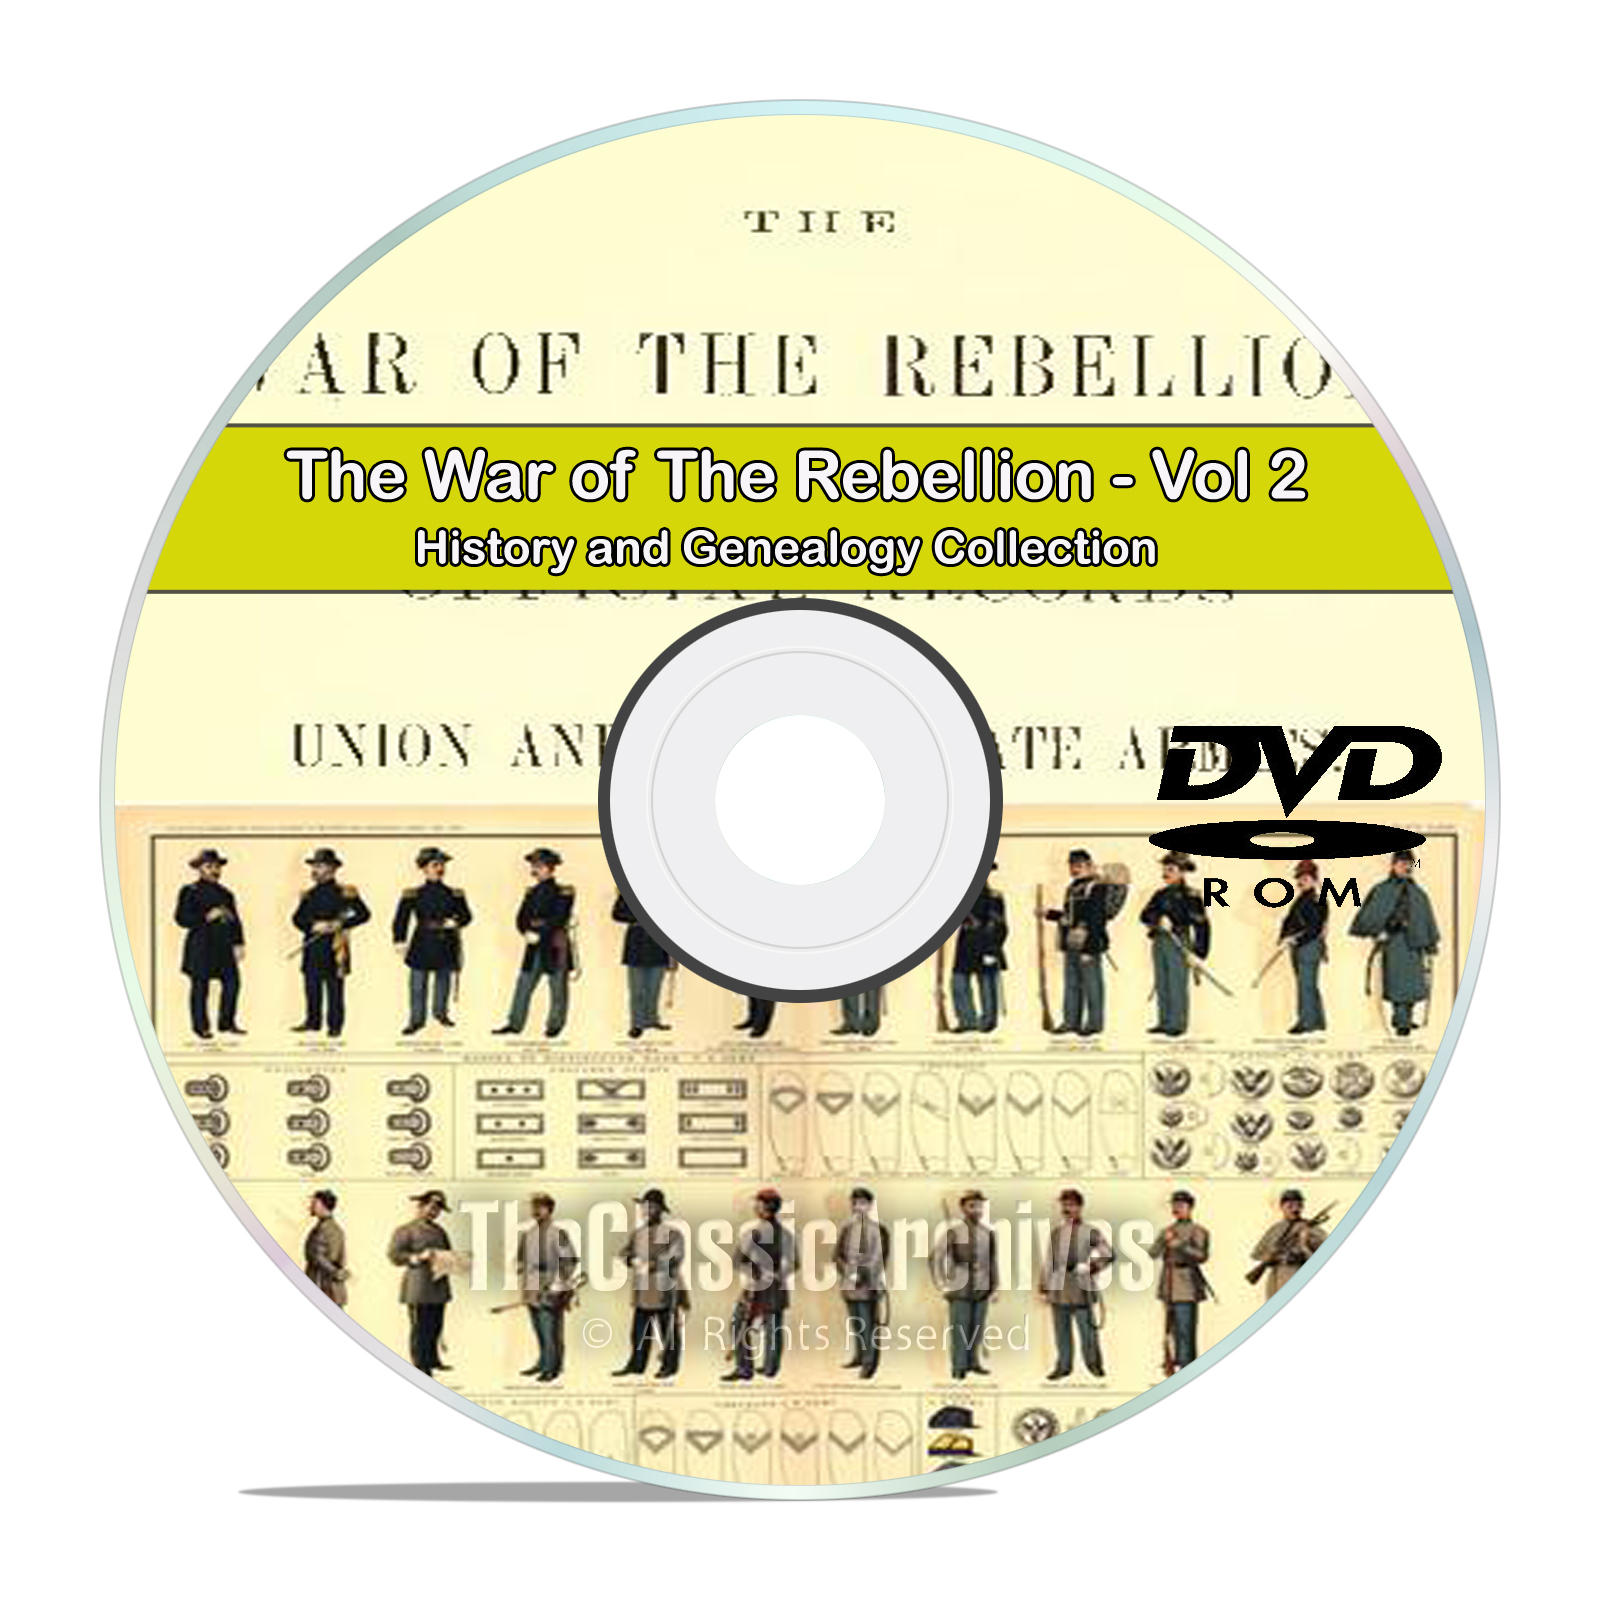 The Civil War of the Rebellion, Records, Atlas History Books Volume 2 DVD